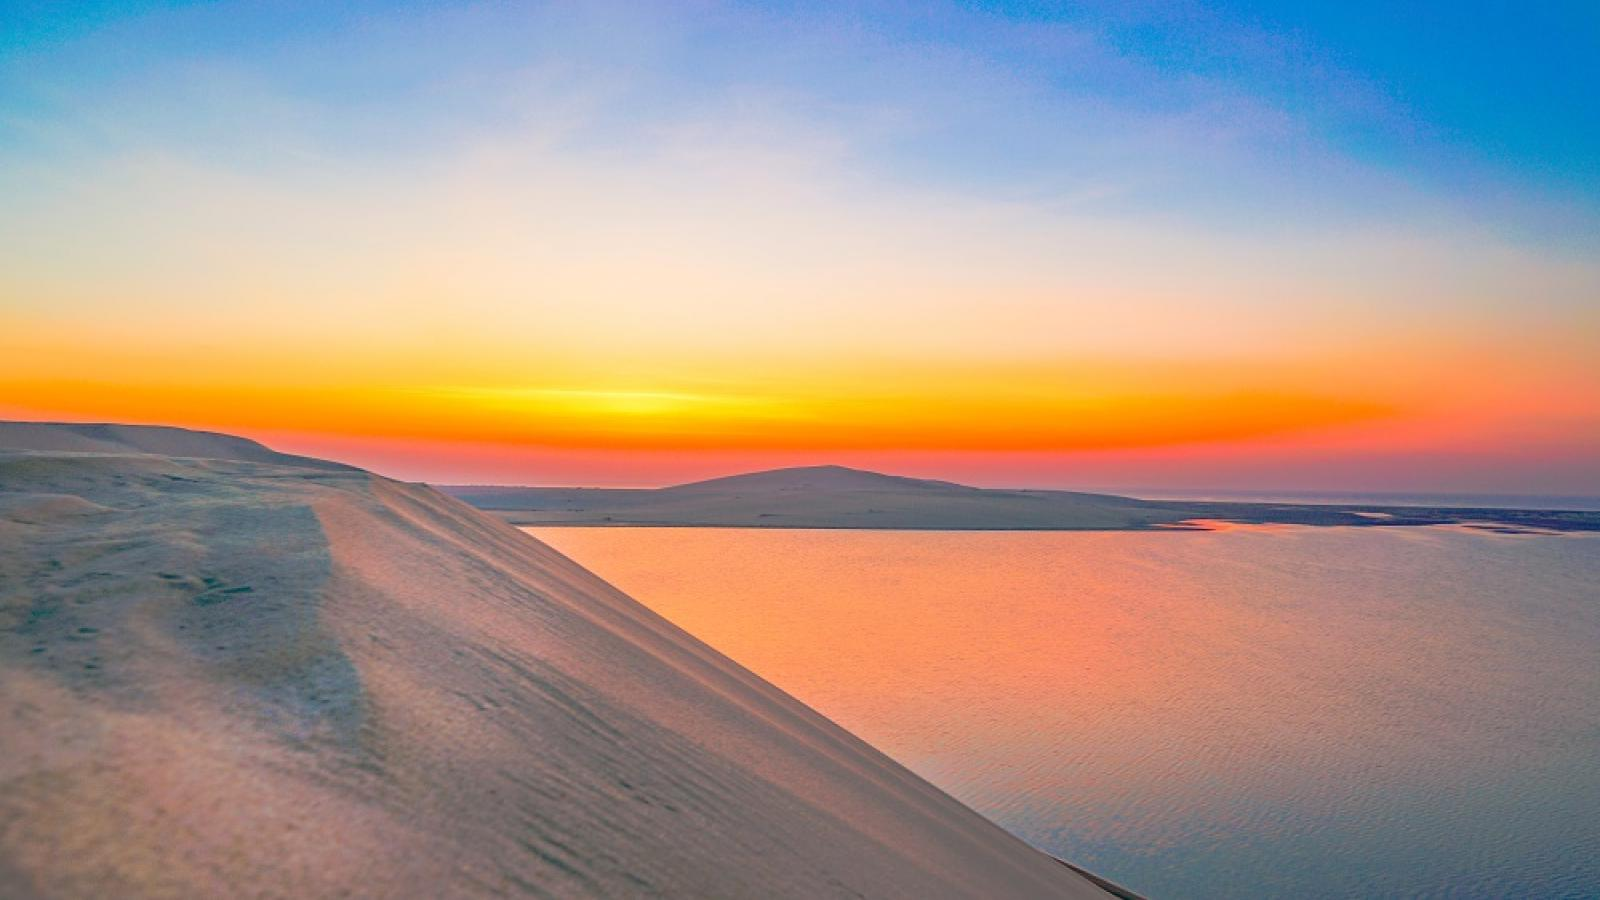 Five places to watch the sunset in Qatar